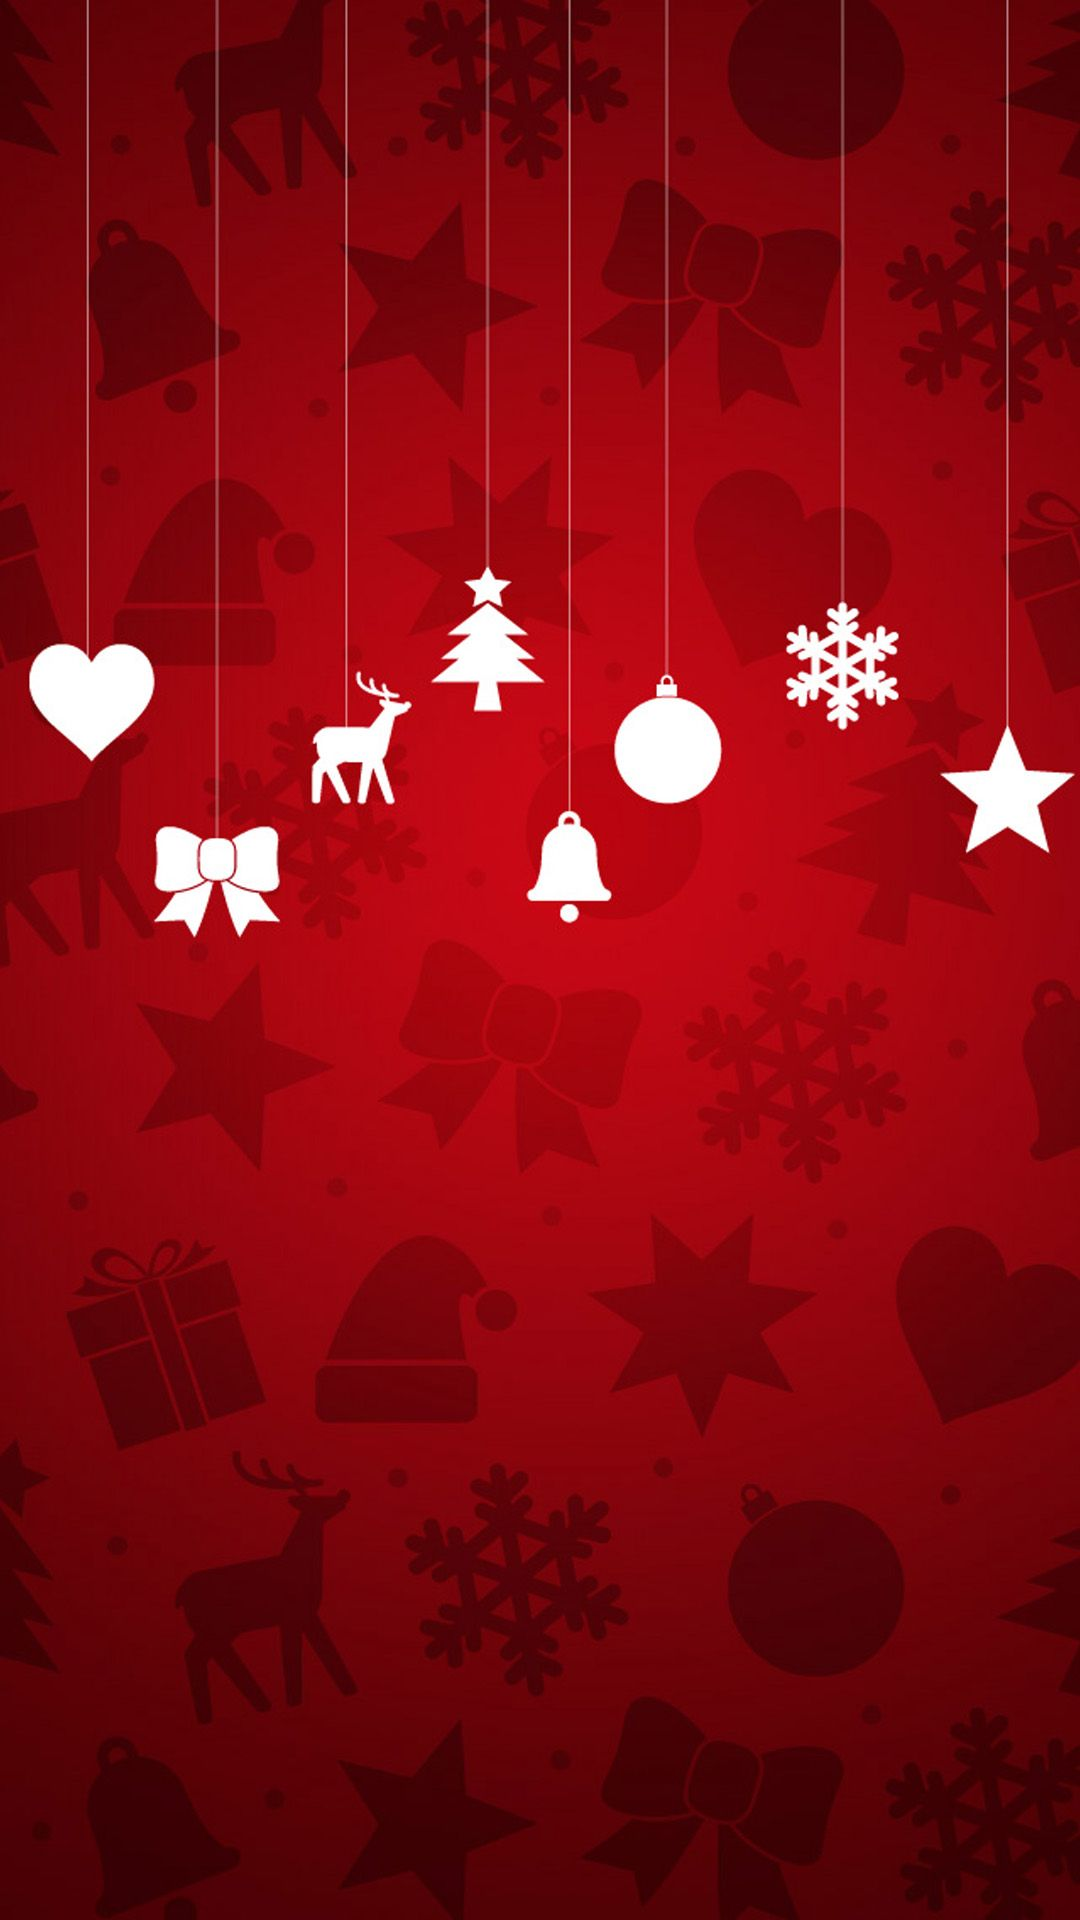 Minimal Christmas Ornaments Red Background Android Wallpaper Jpg 1080 1920 Christmas Phone Wallpaper Wallpaper Iphone Christmas Christmas Background Iphone